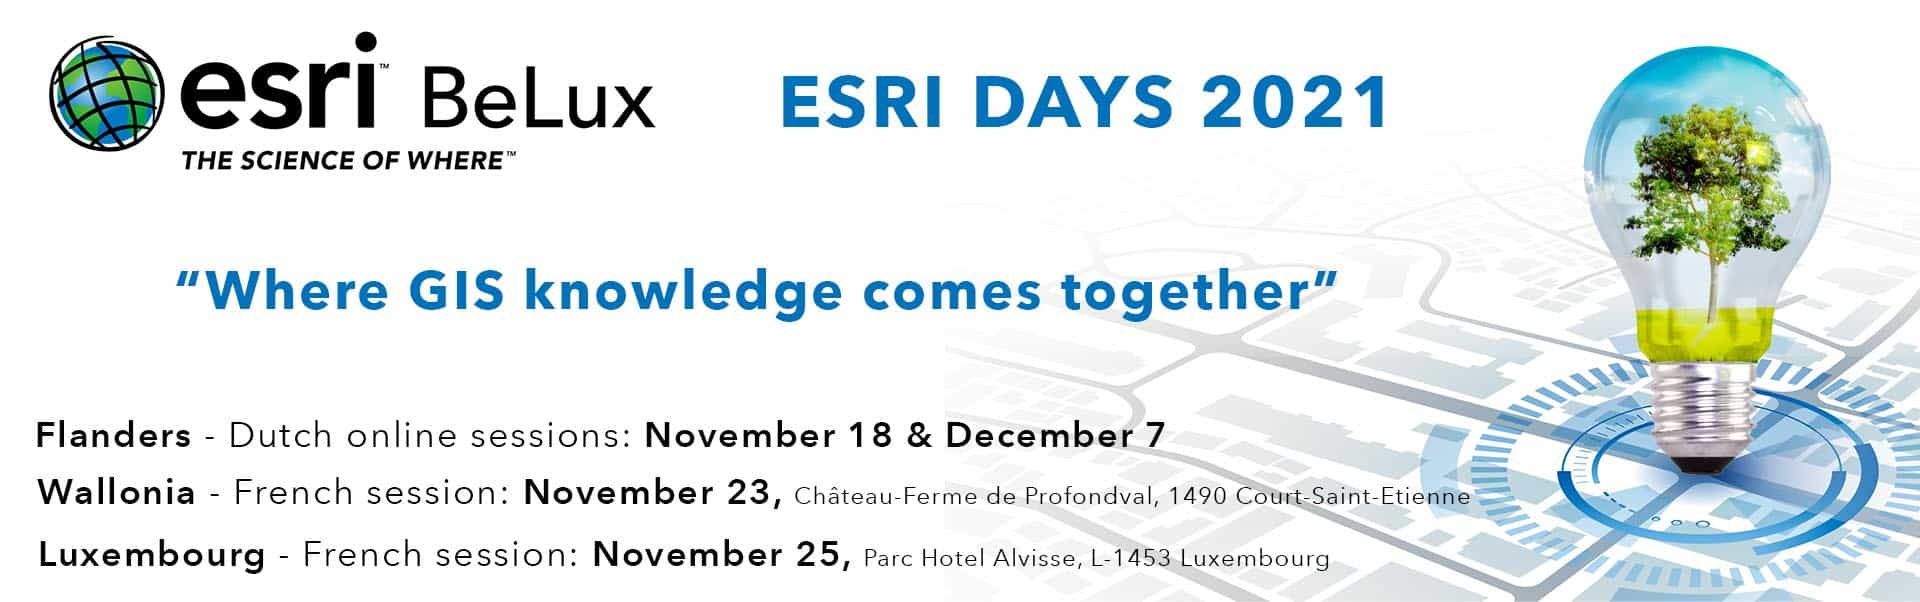 webssite banner Esri Days 2021 language and online sessions